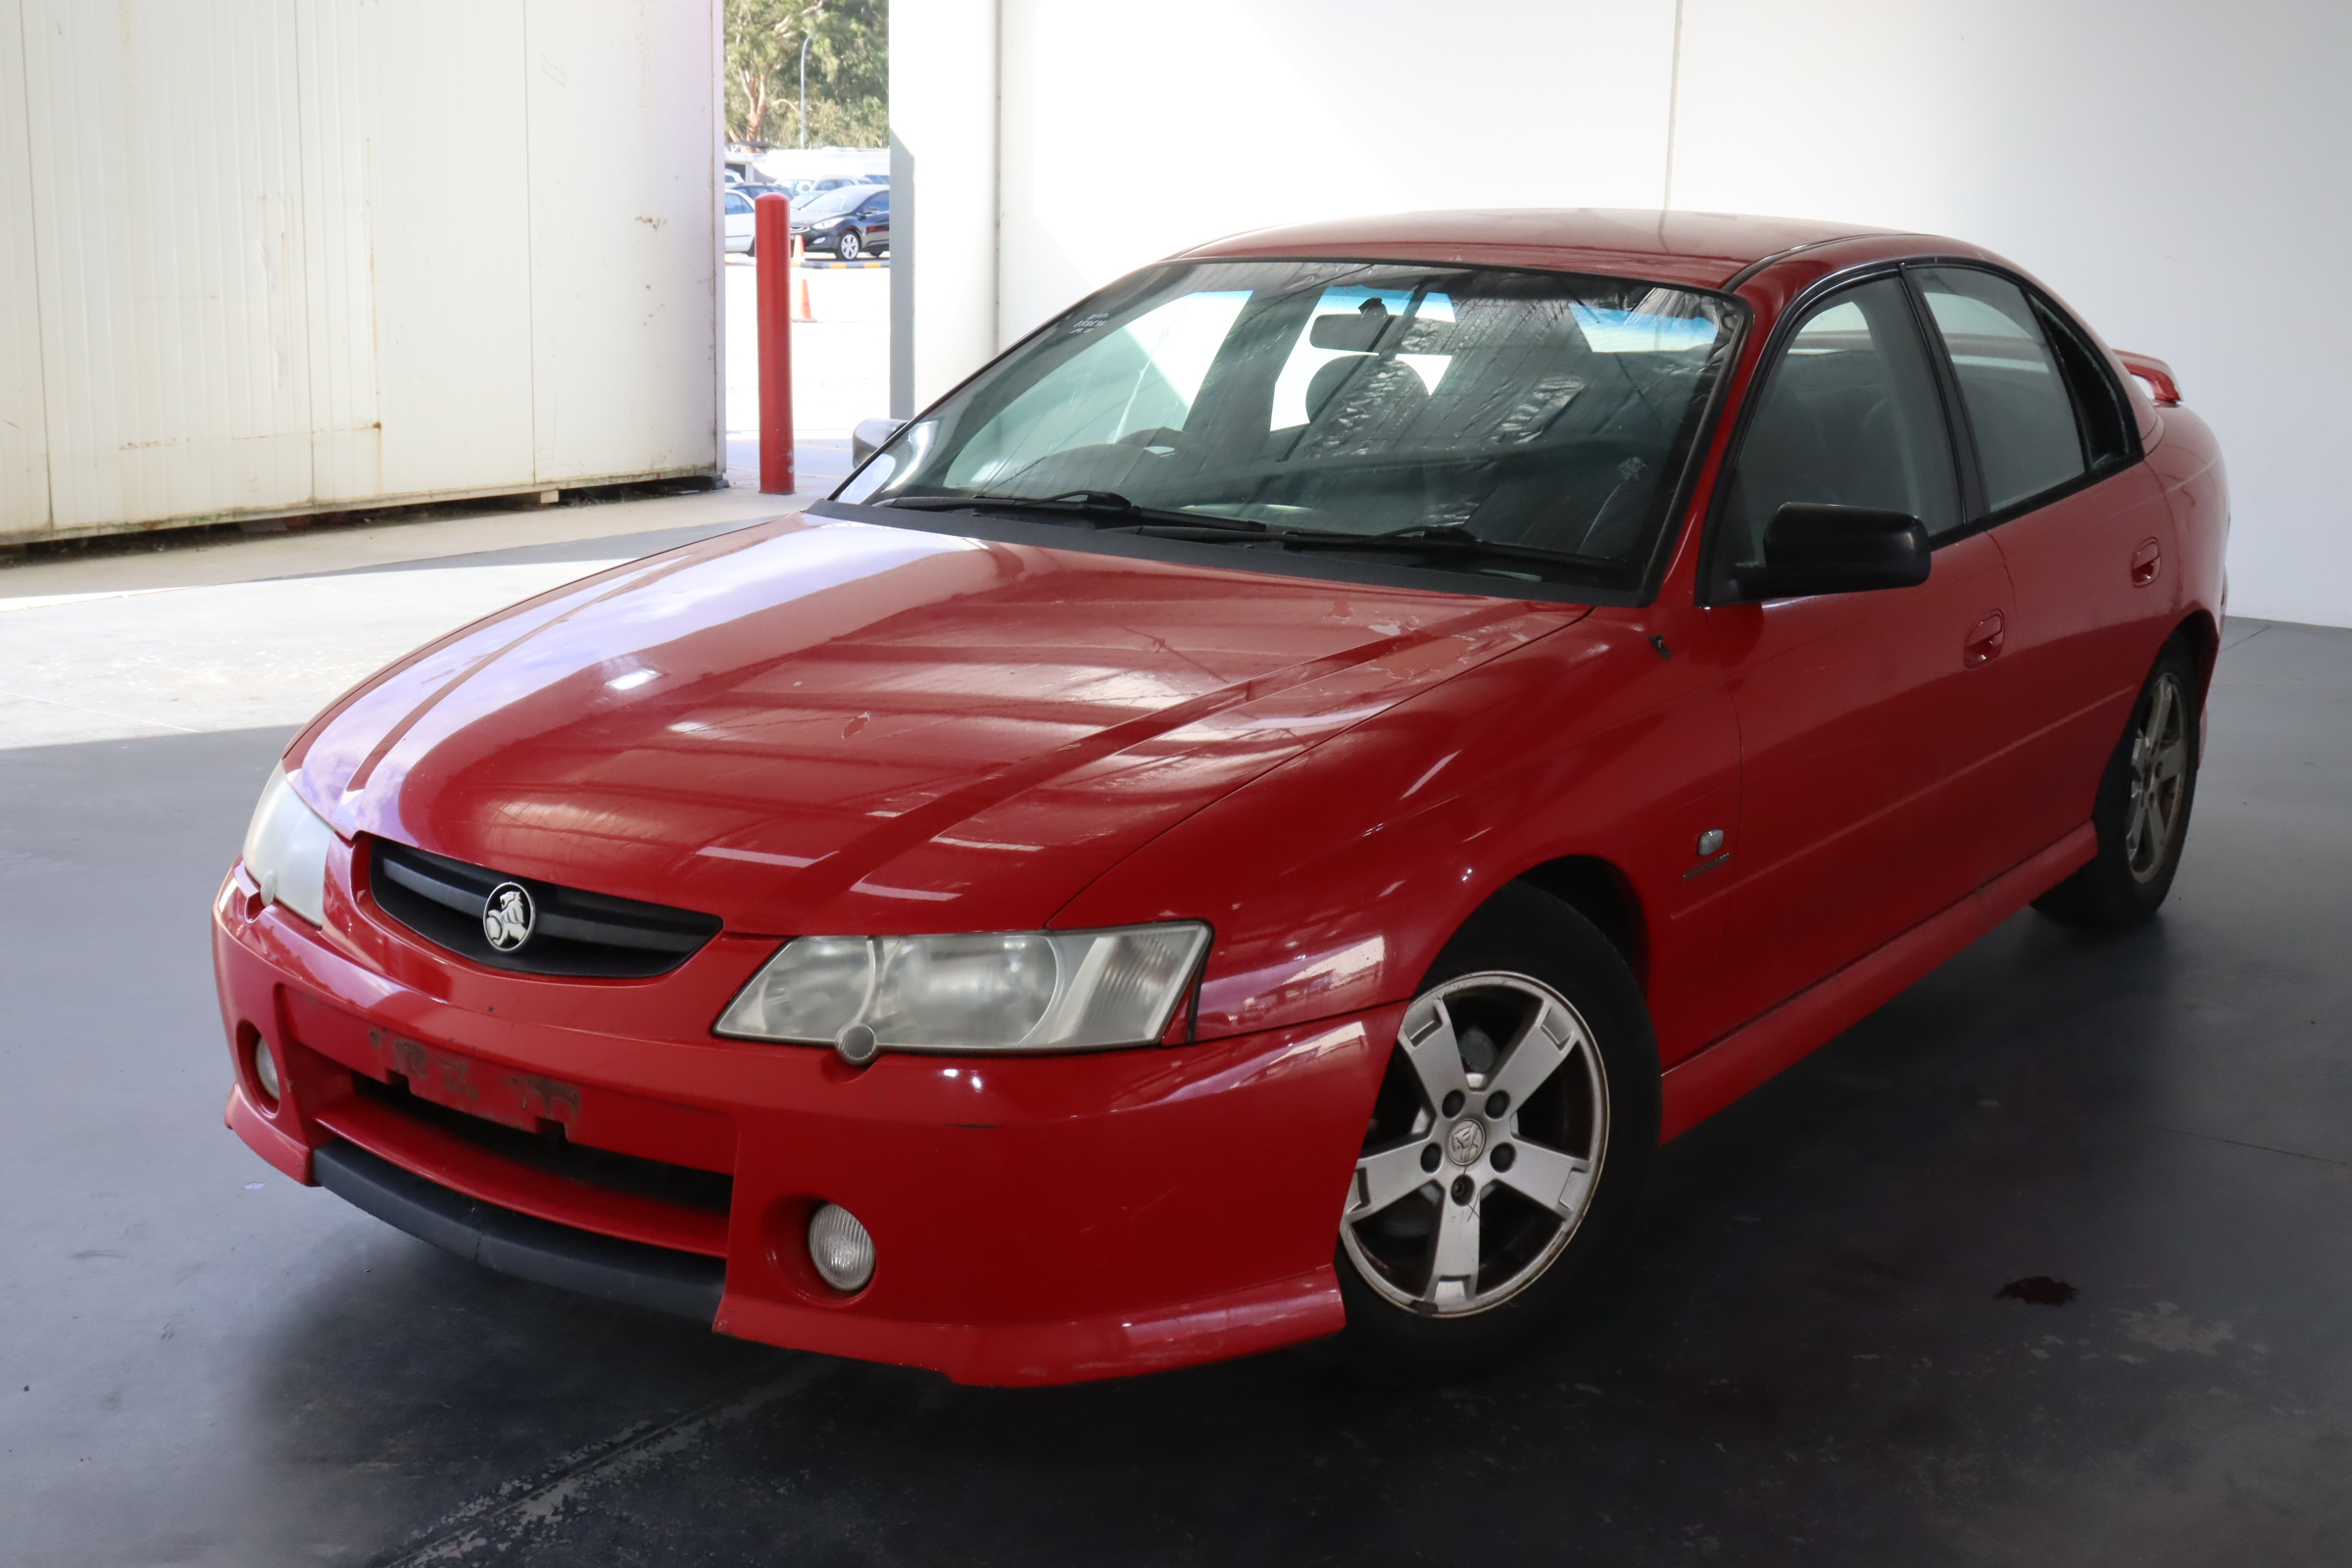 2003 Holden Commodore S Y Series Automatic Sedan